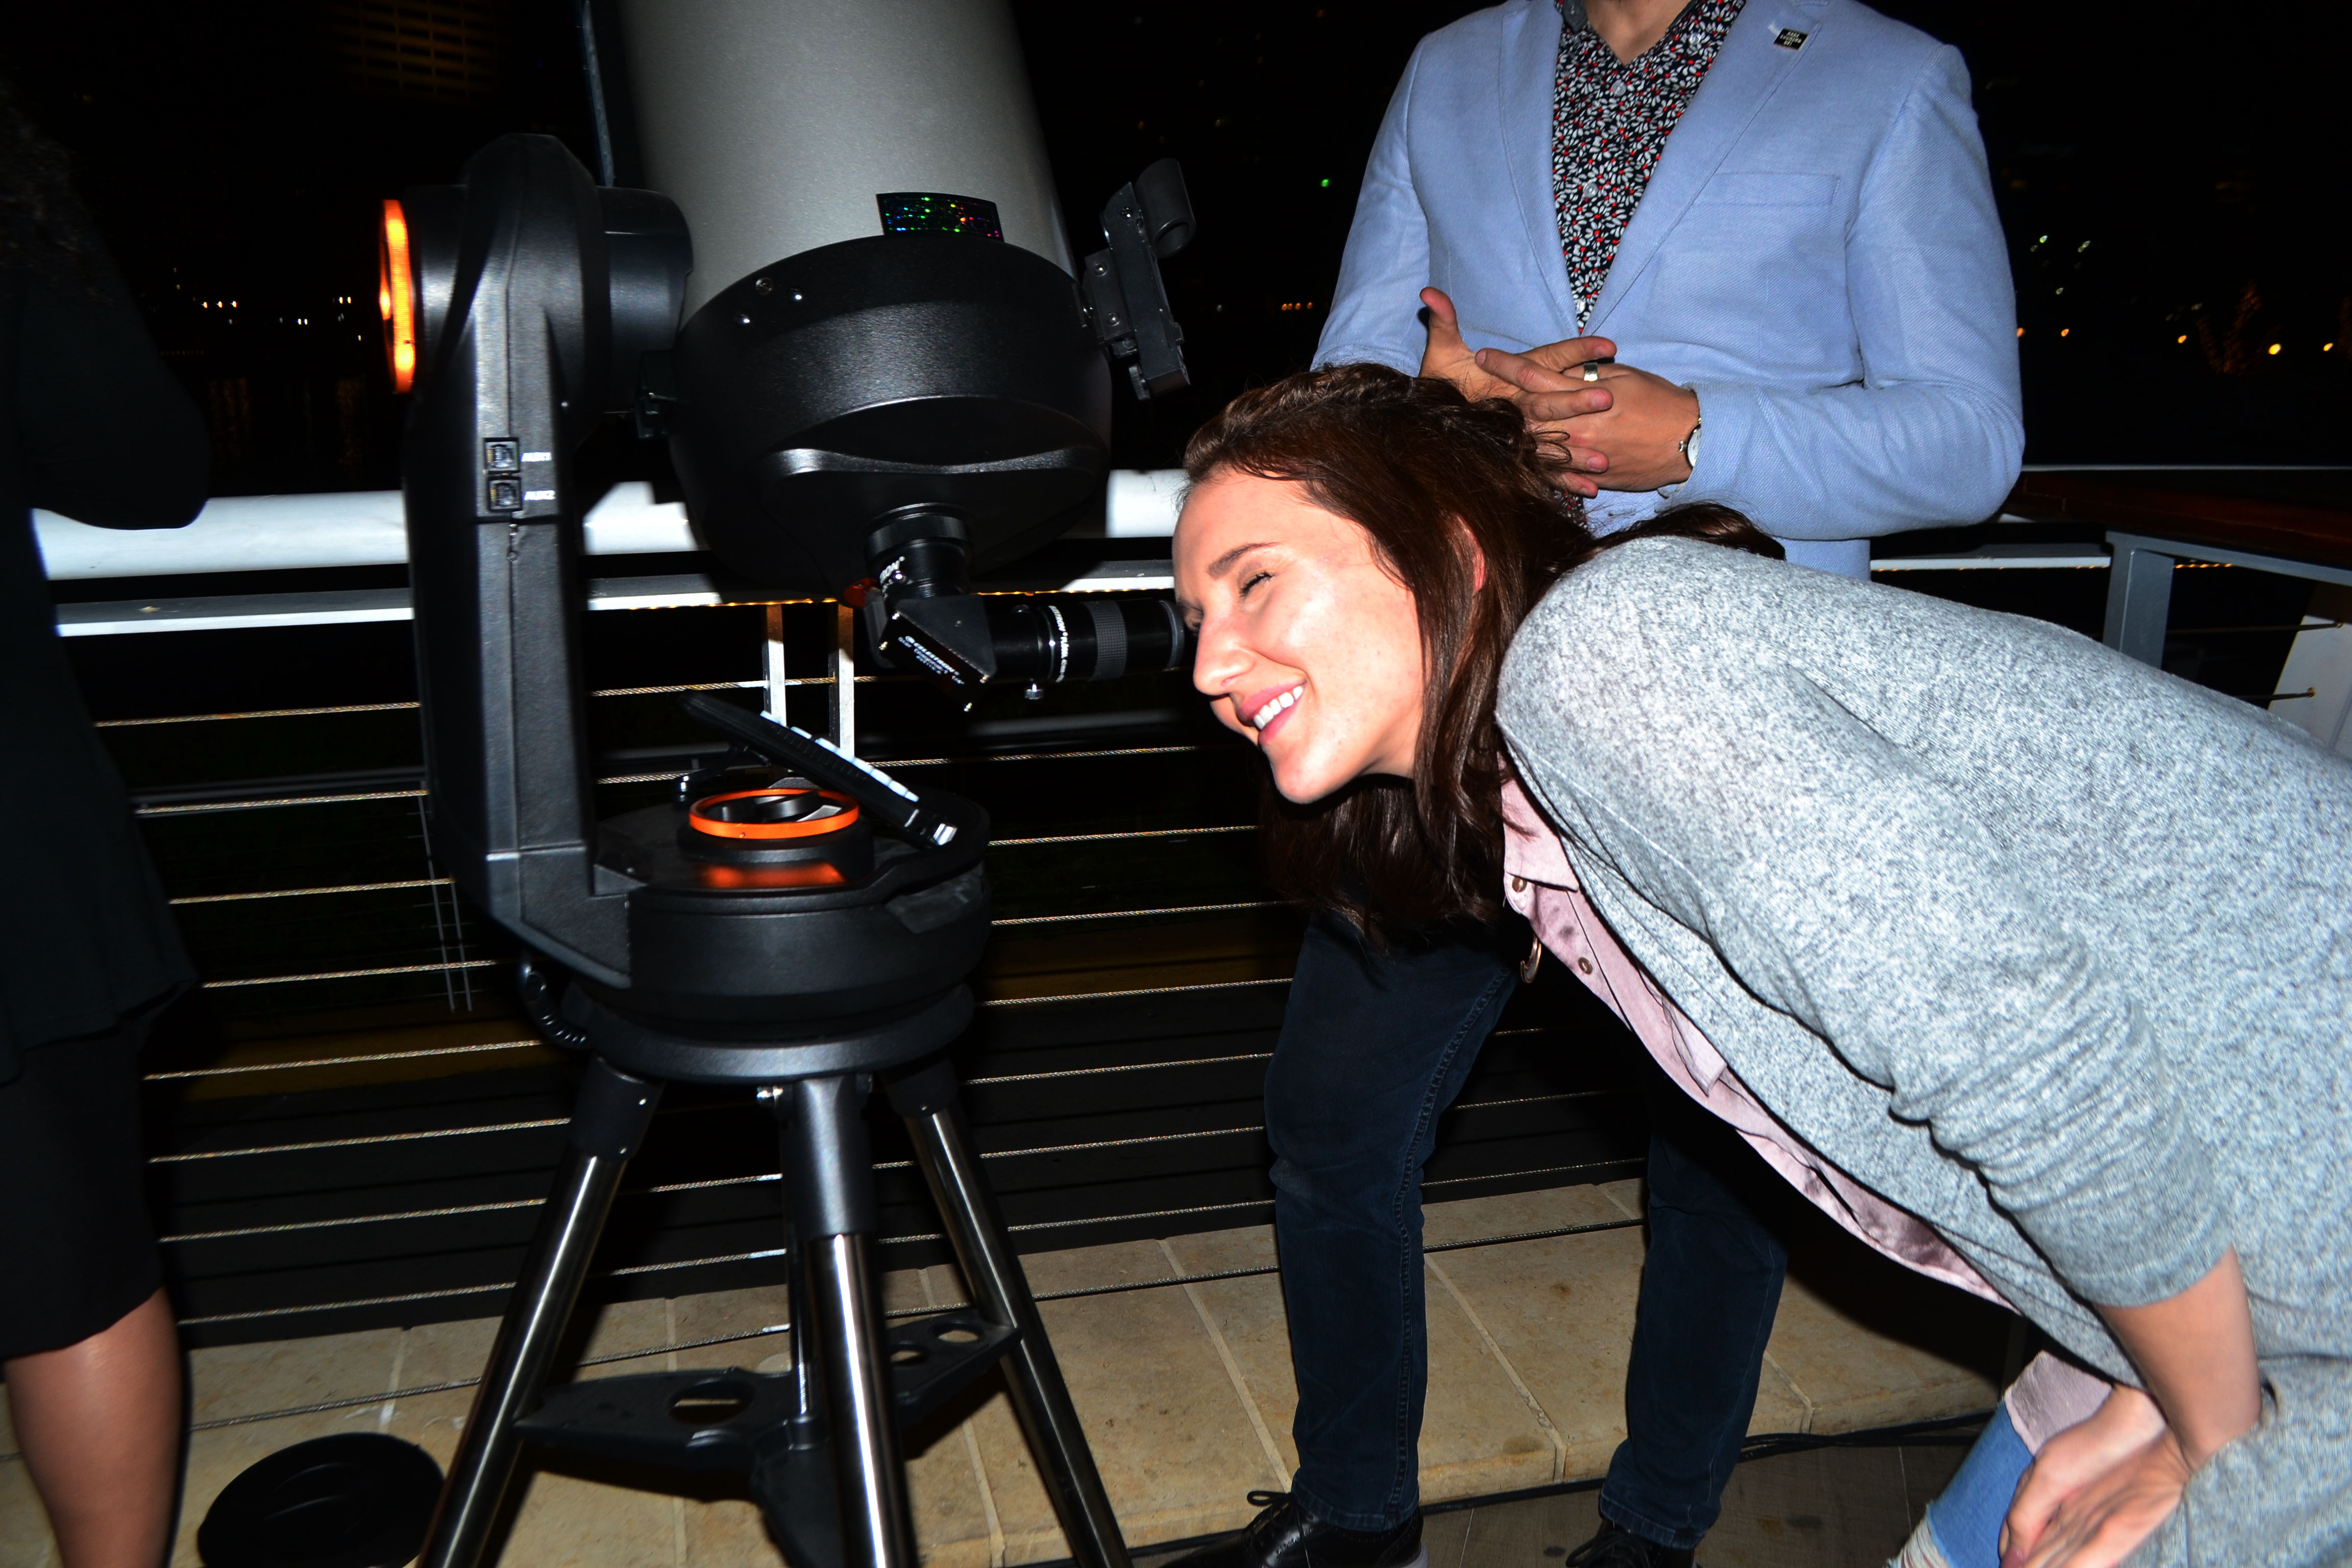 Young Patron enjoying stargazing during happy hour event